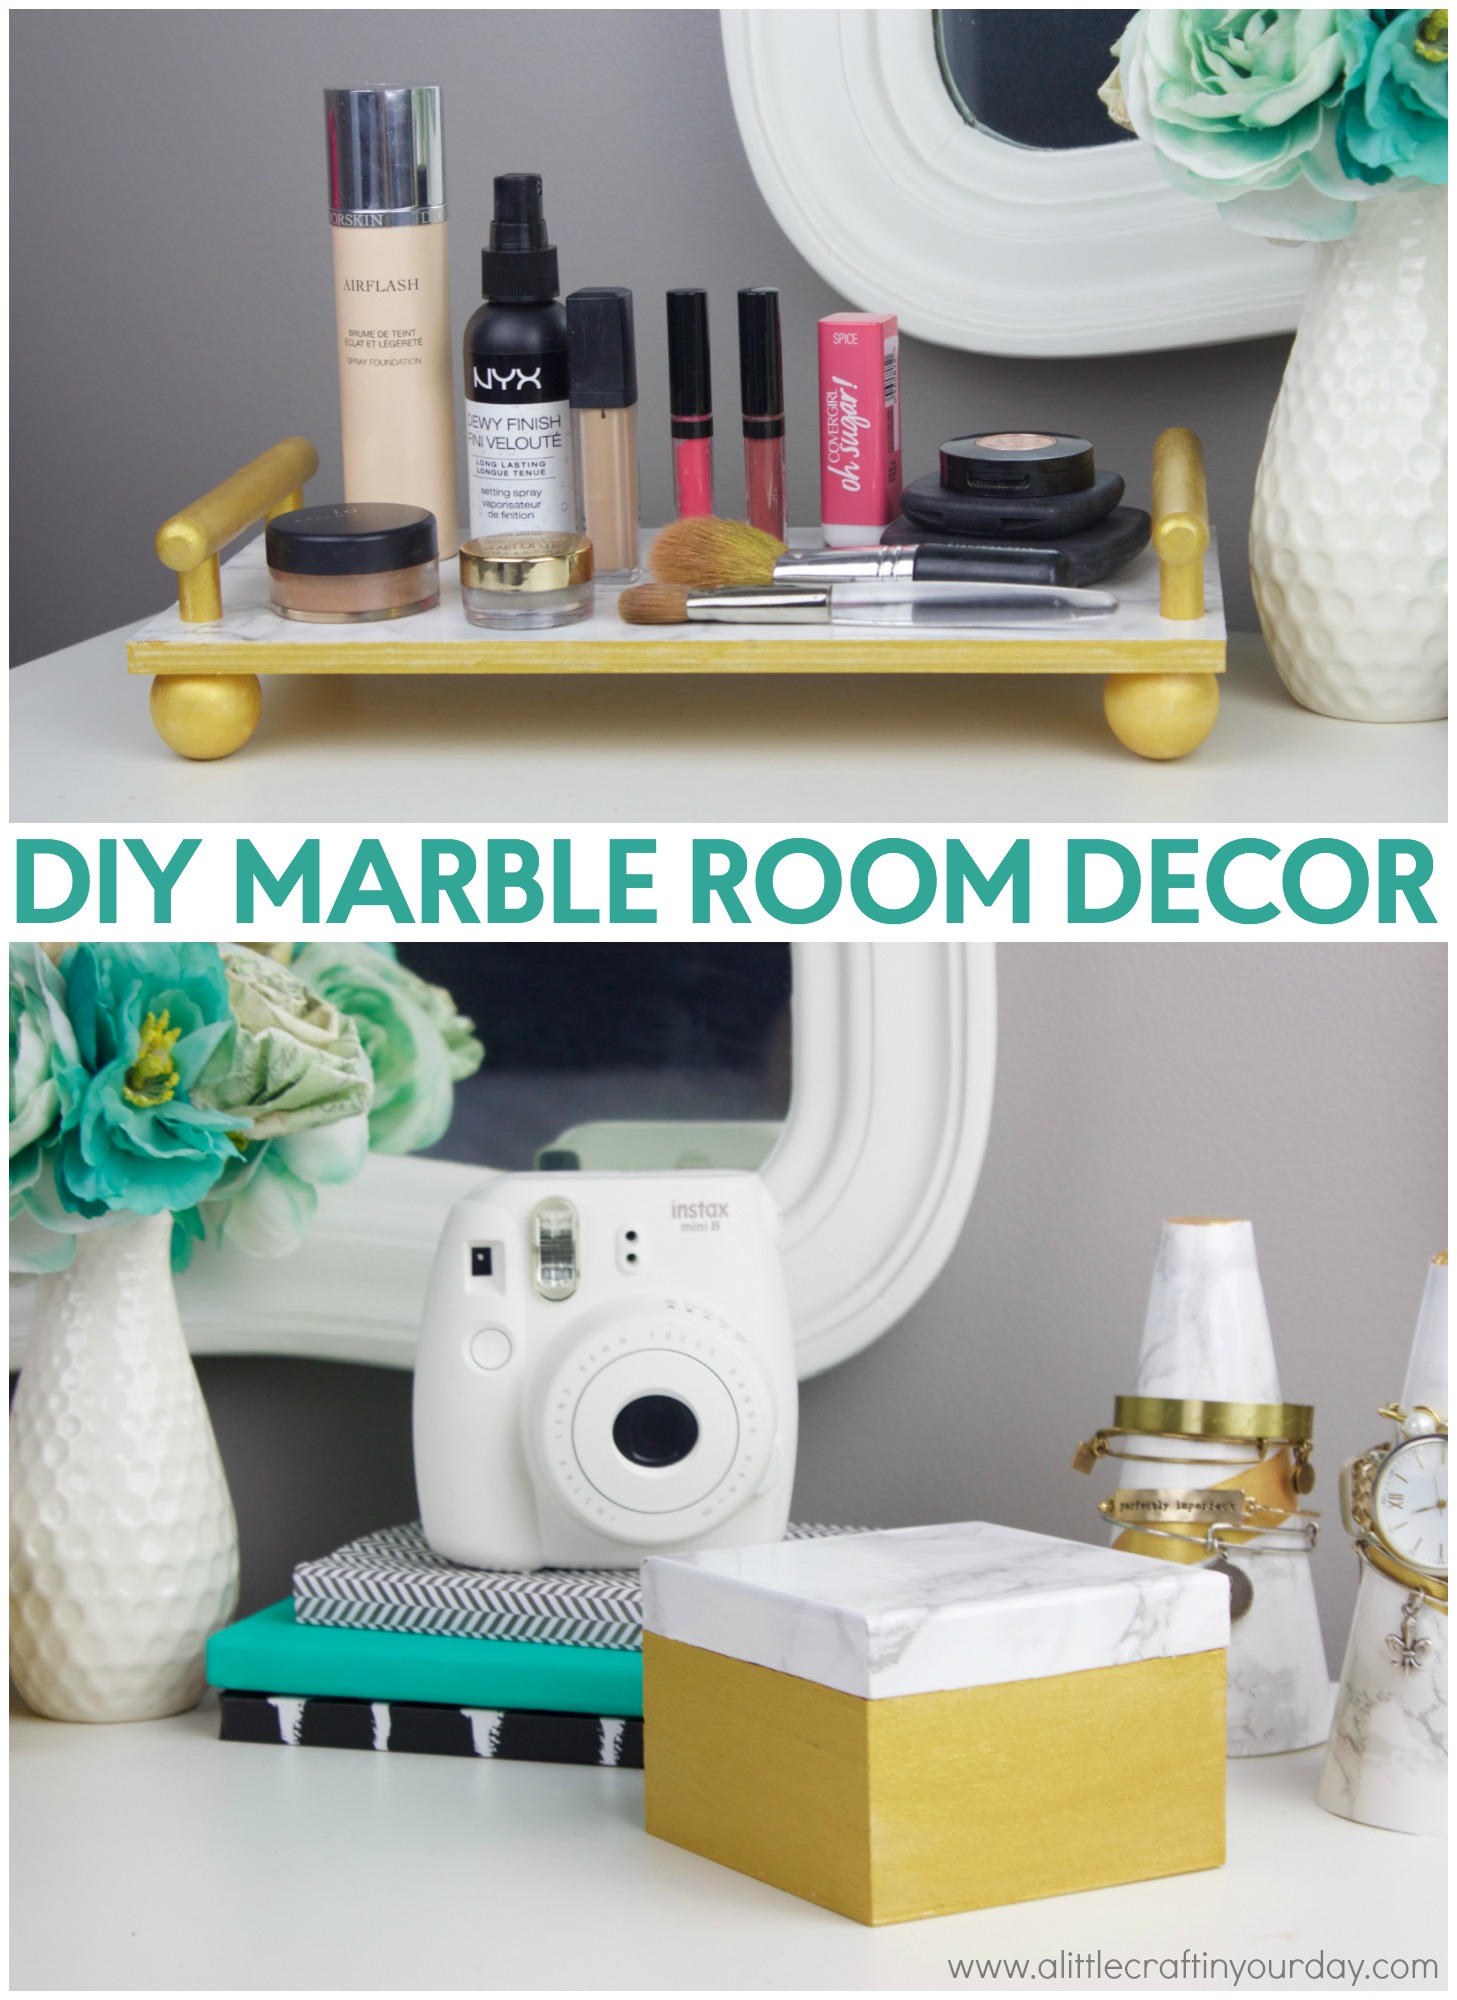 DIY Marble Room Decor  A Little Craft In Your Day